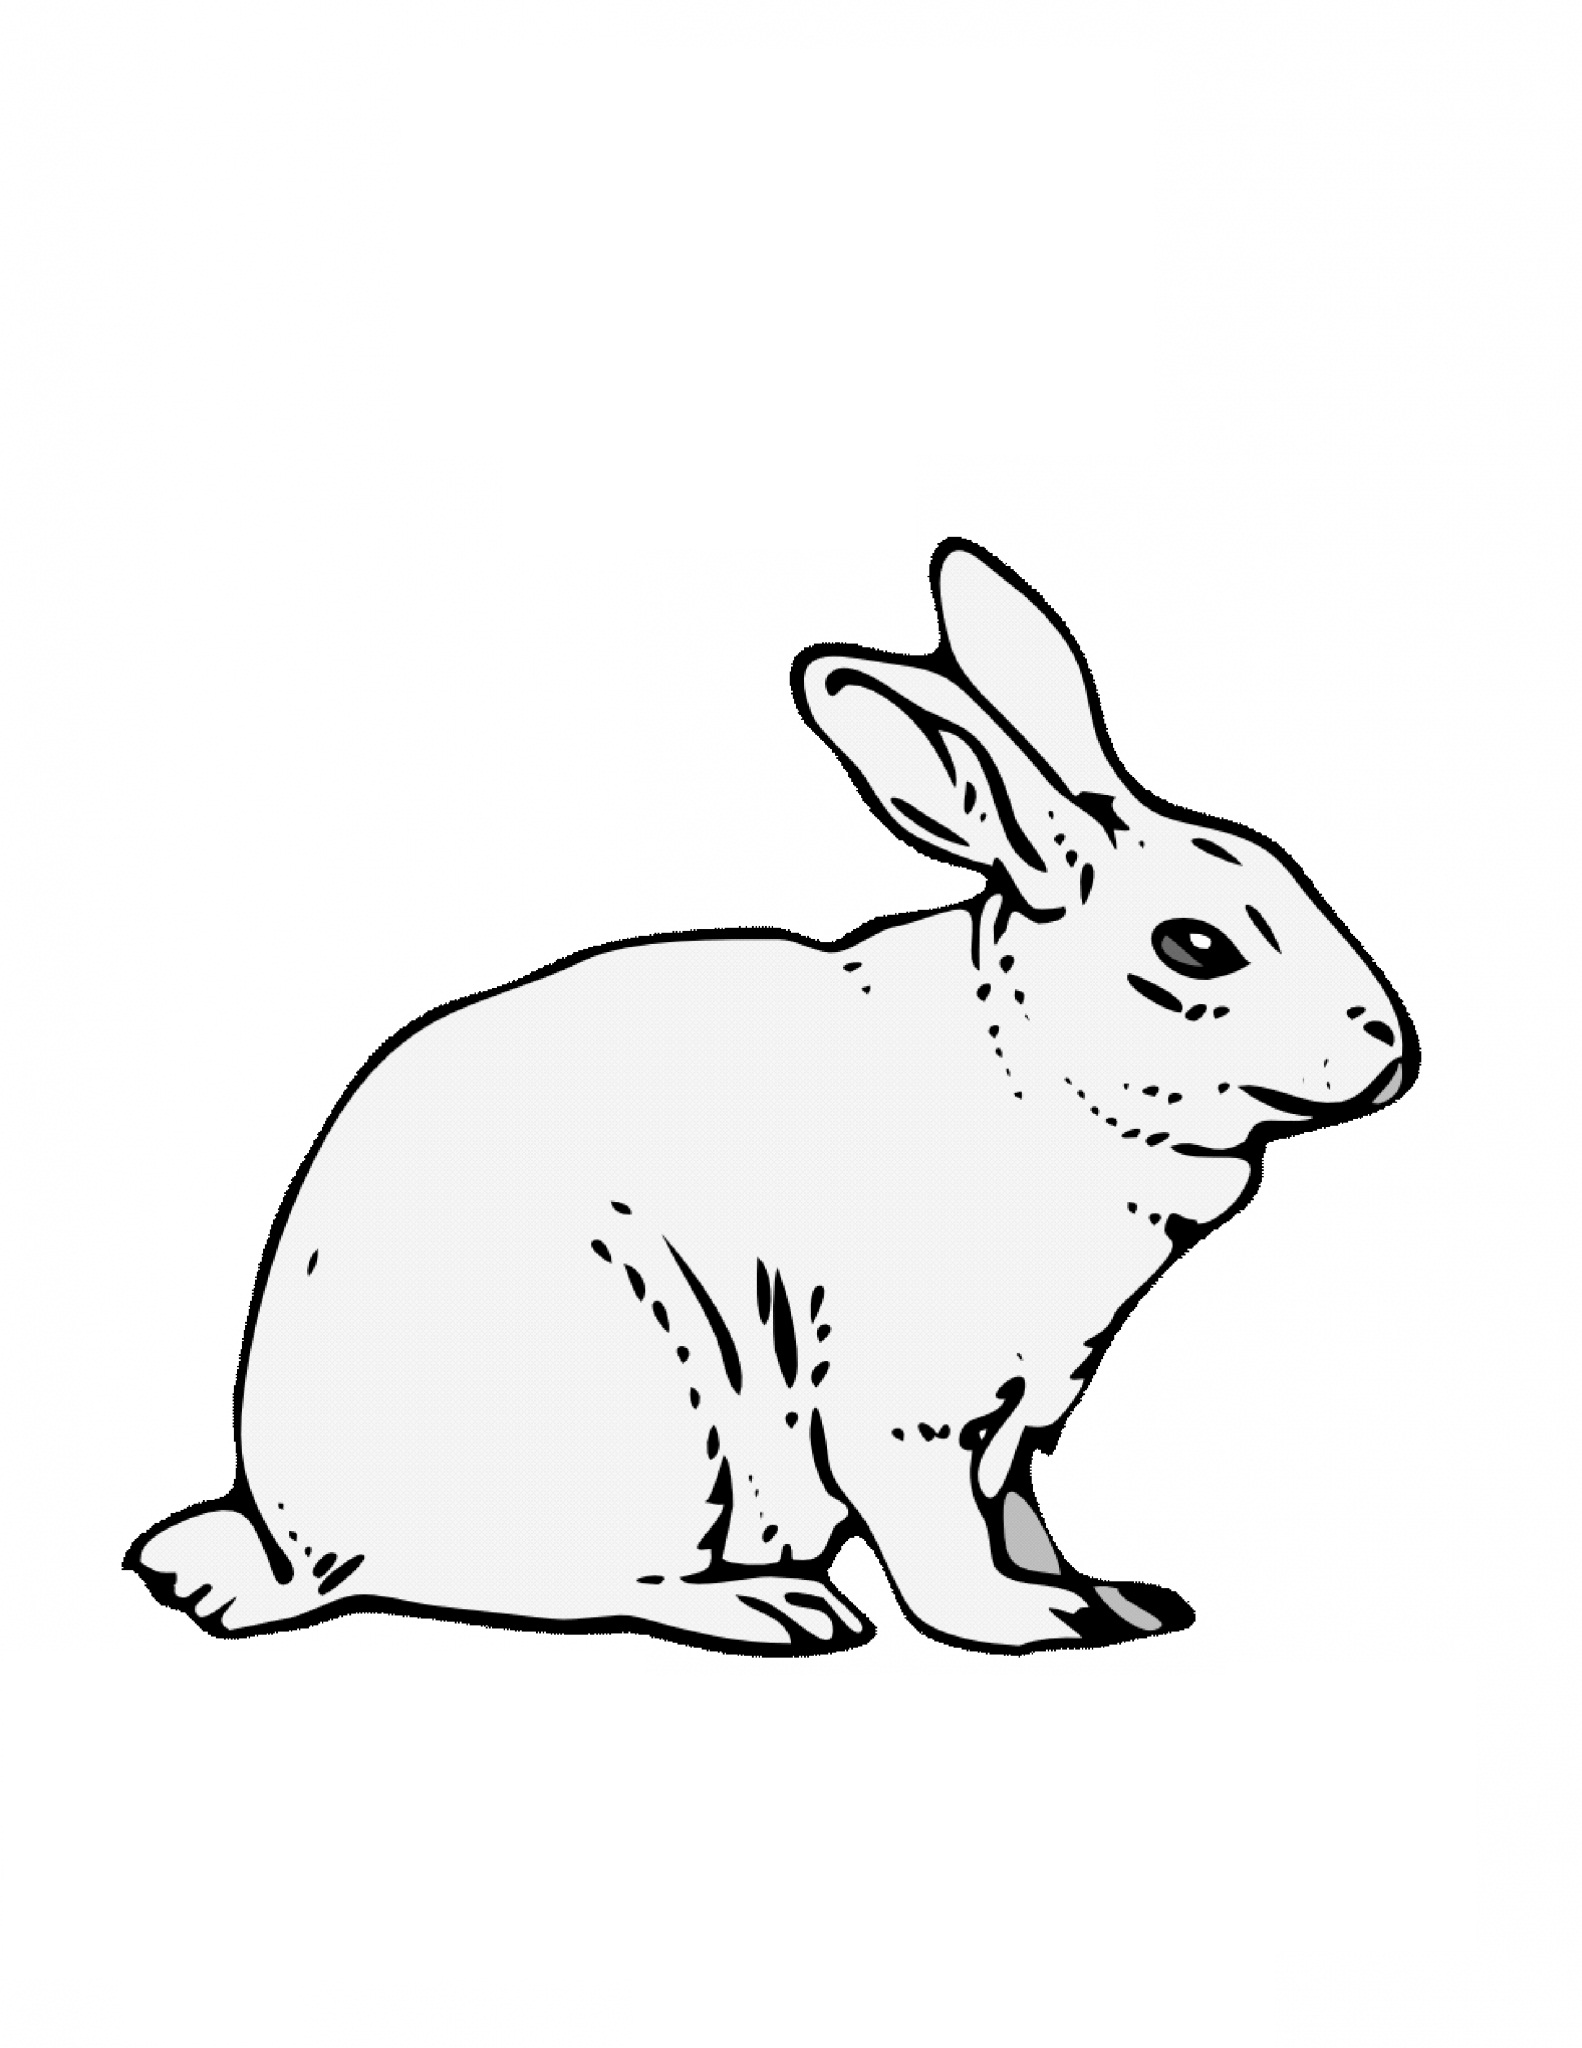 1582x2048 Rabbit Coloring Pages